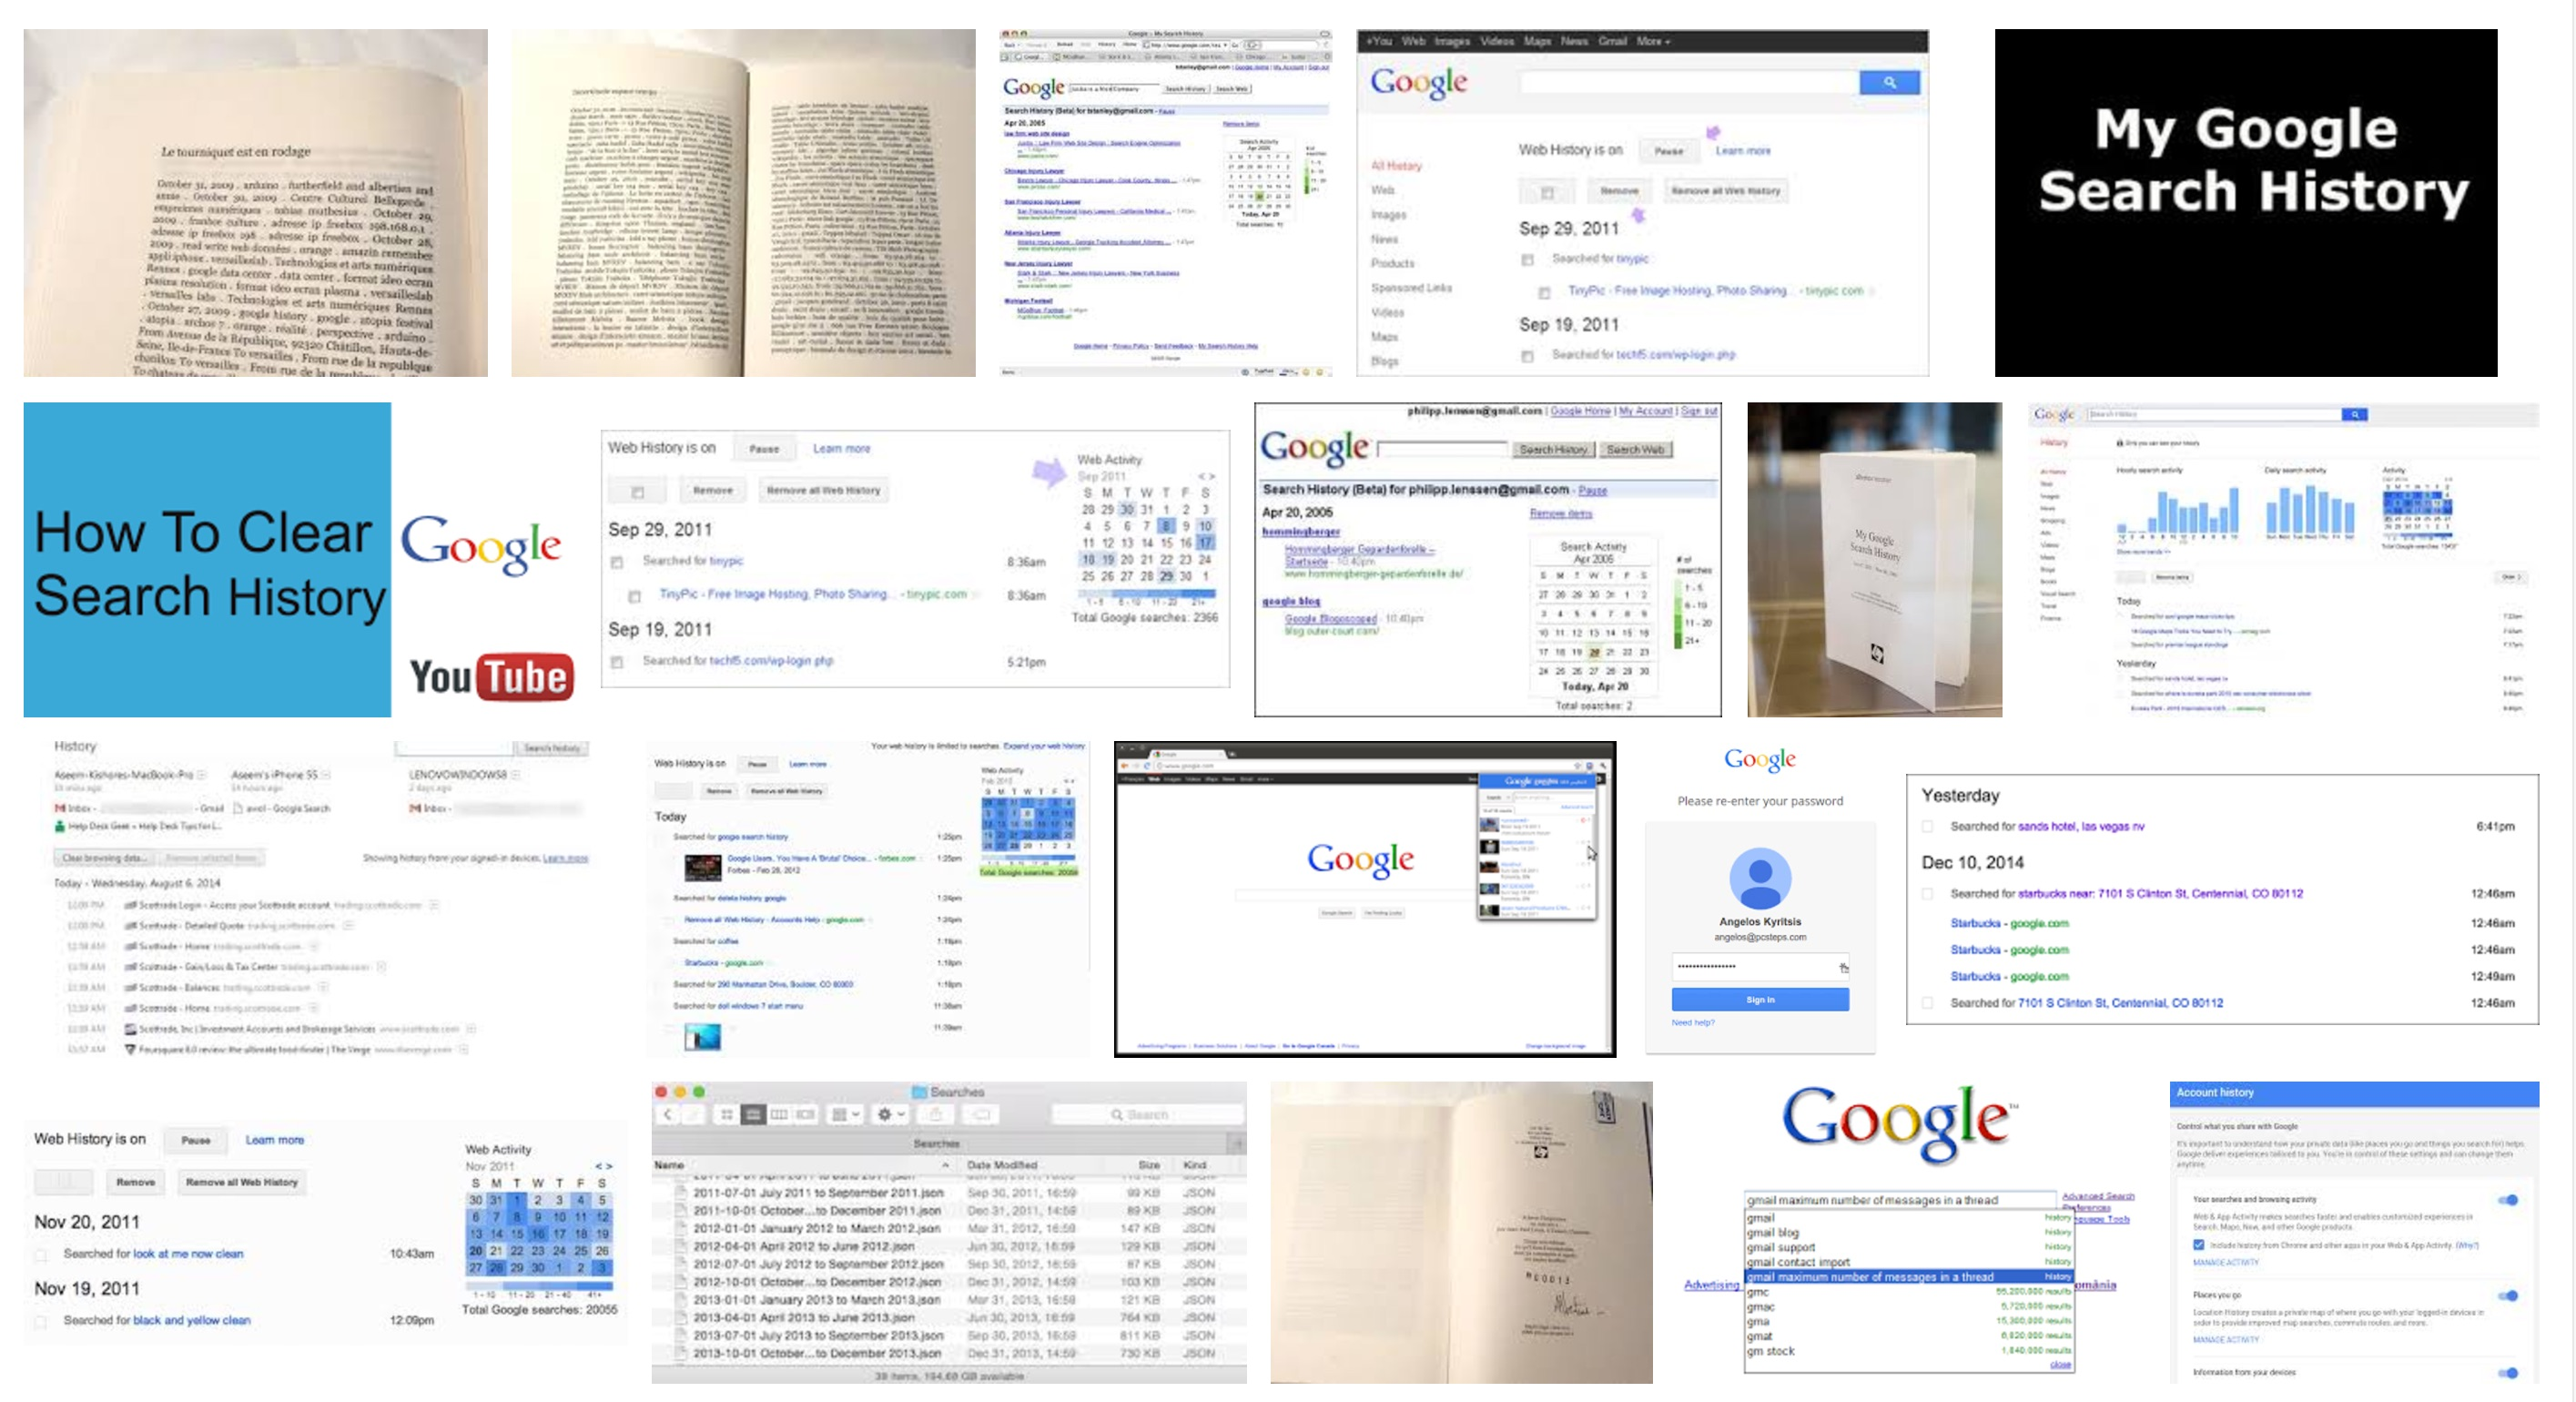 how to find my google search history